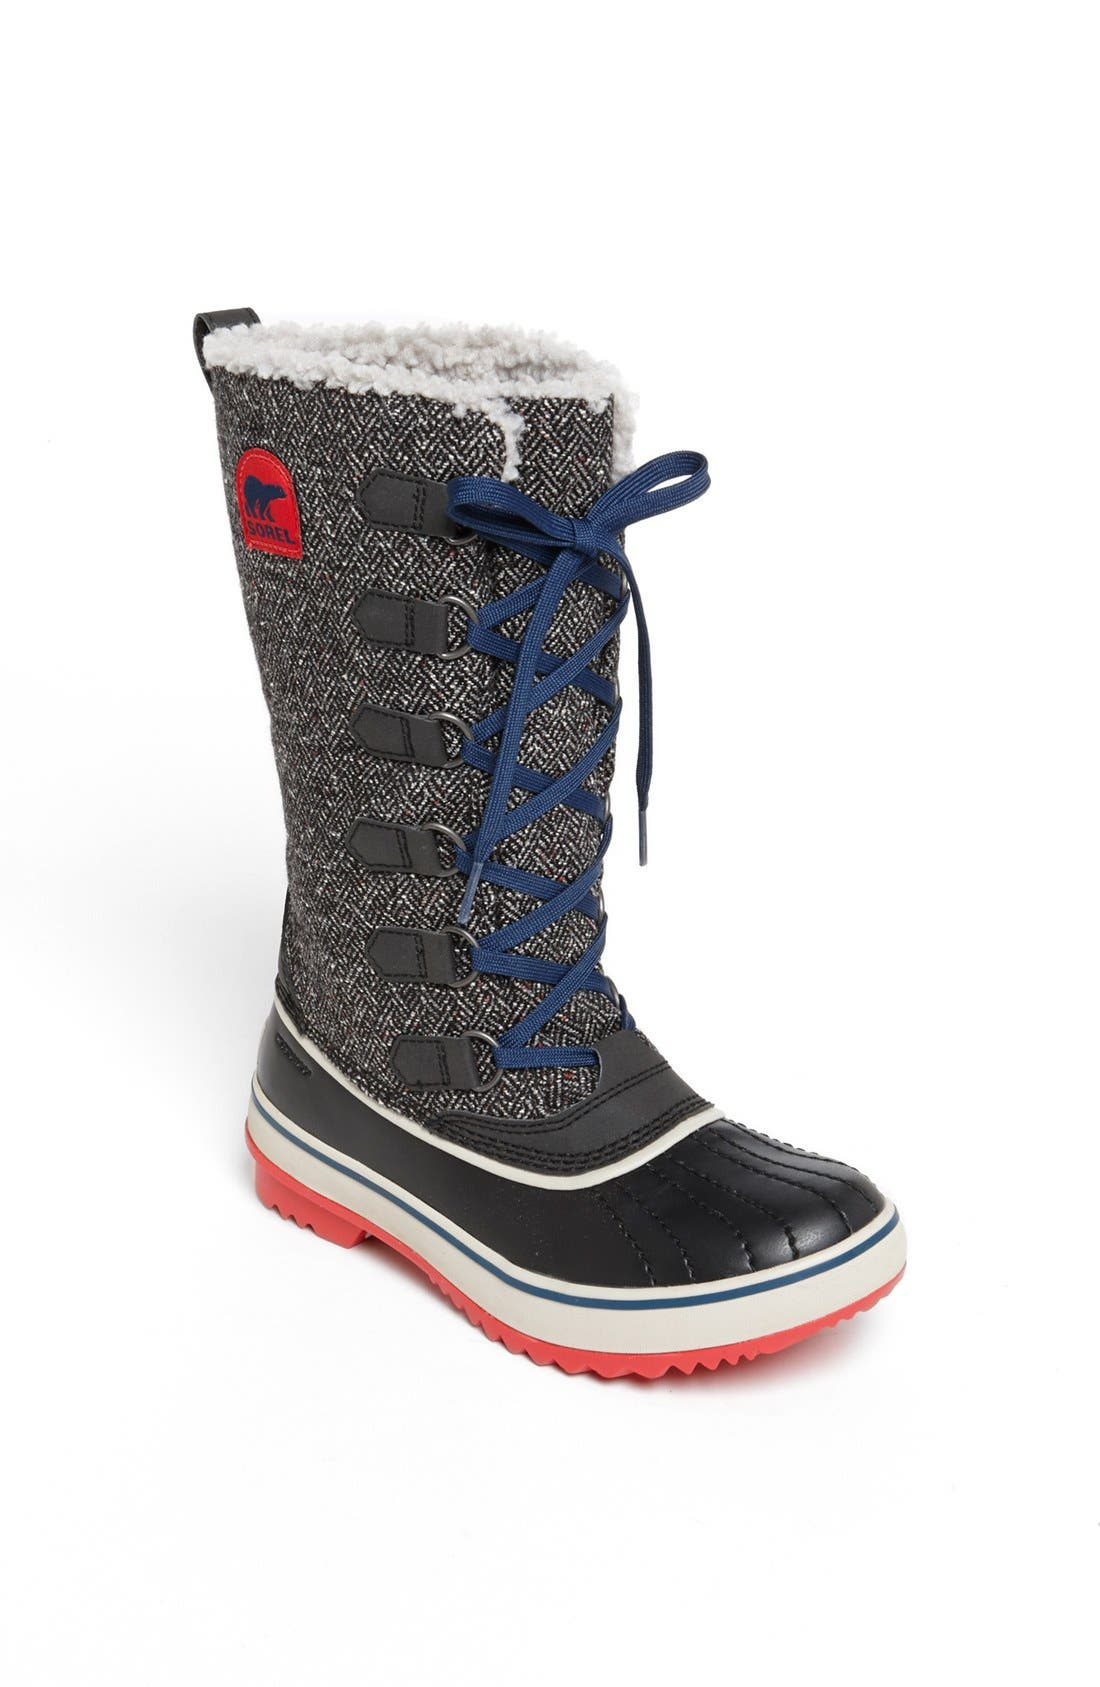 Main Image - SOREL 'Tivoli High' Waterproof Boot